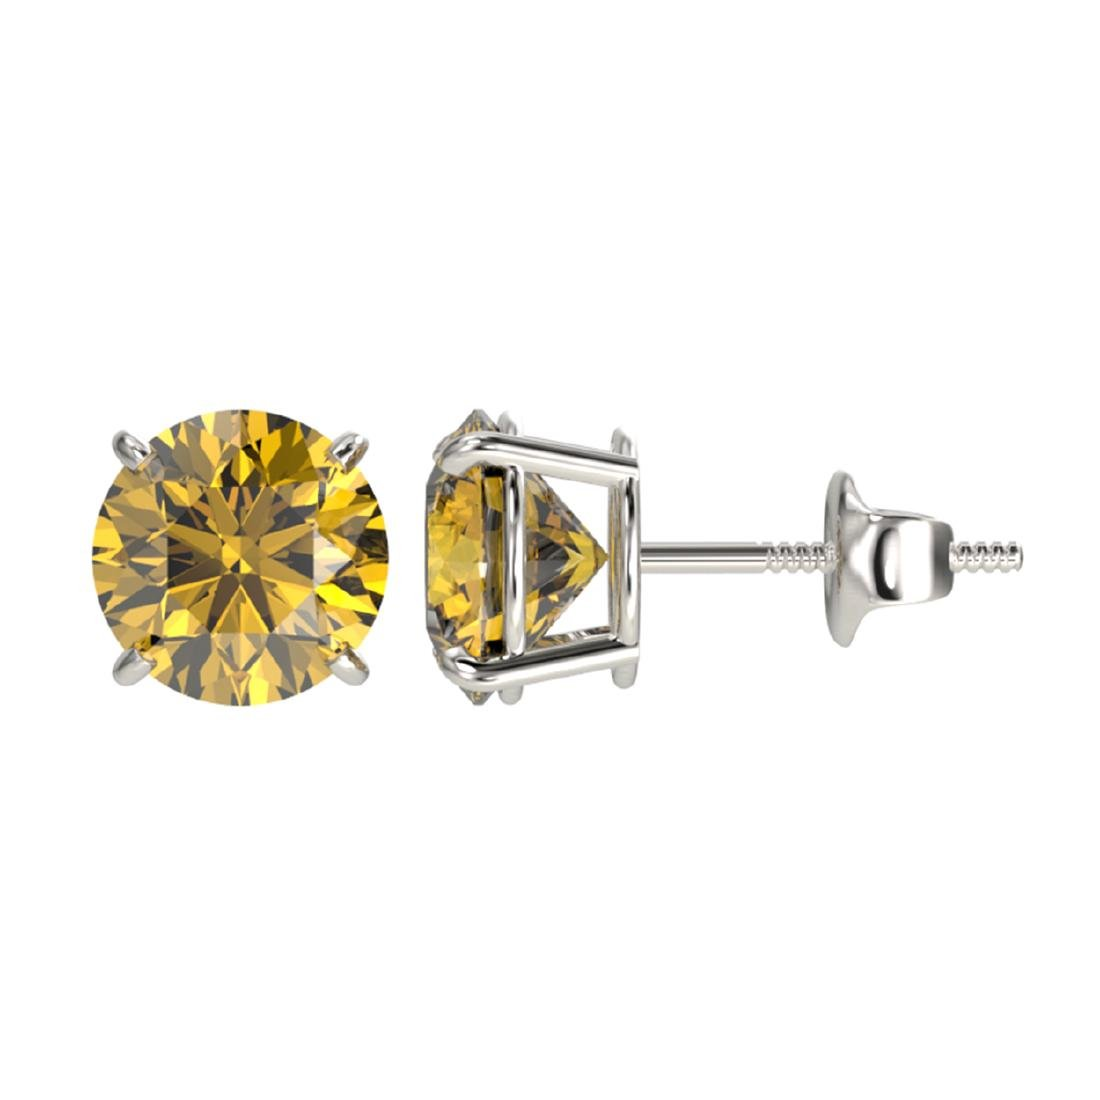 2 ctw Intense Yellow Diamond Stud Earrings 10K White - 2